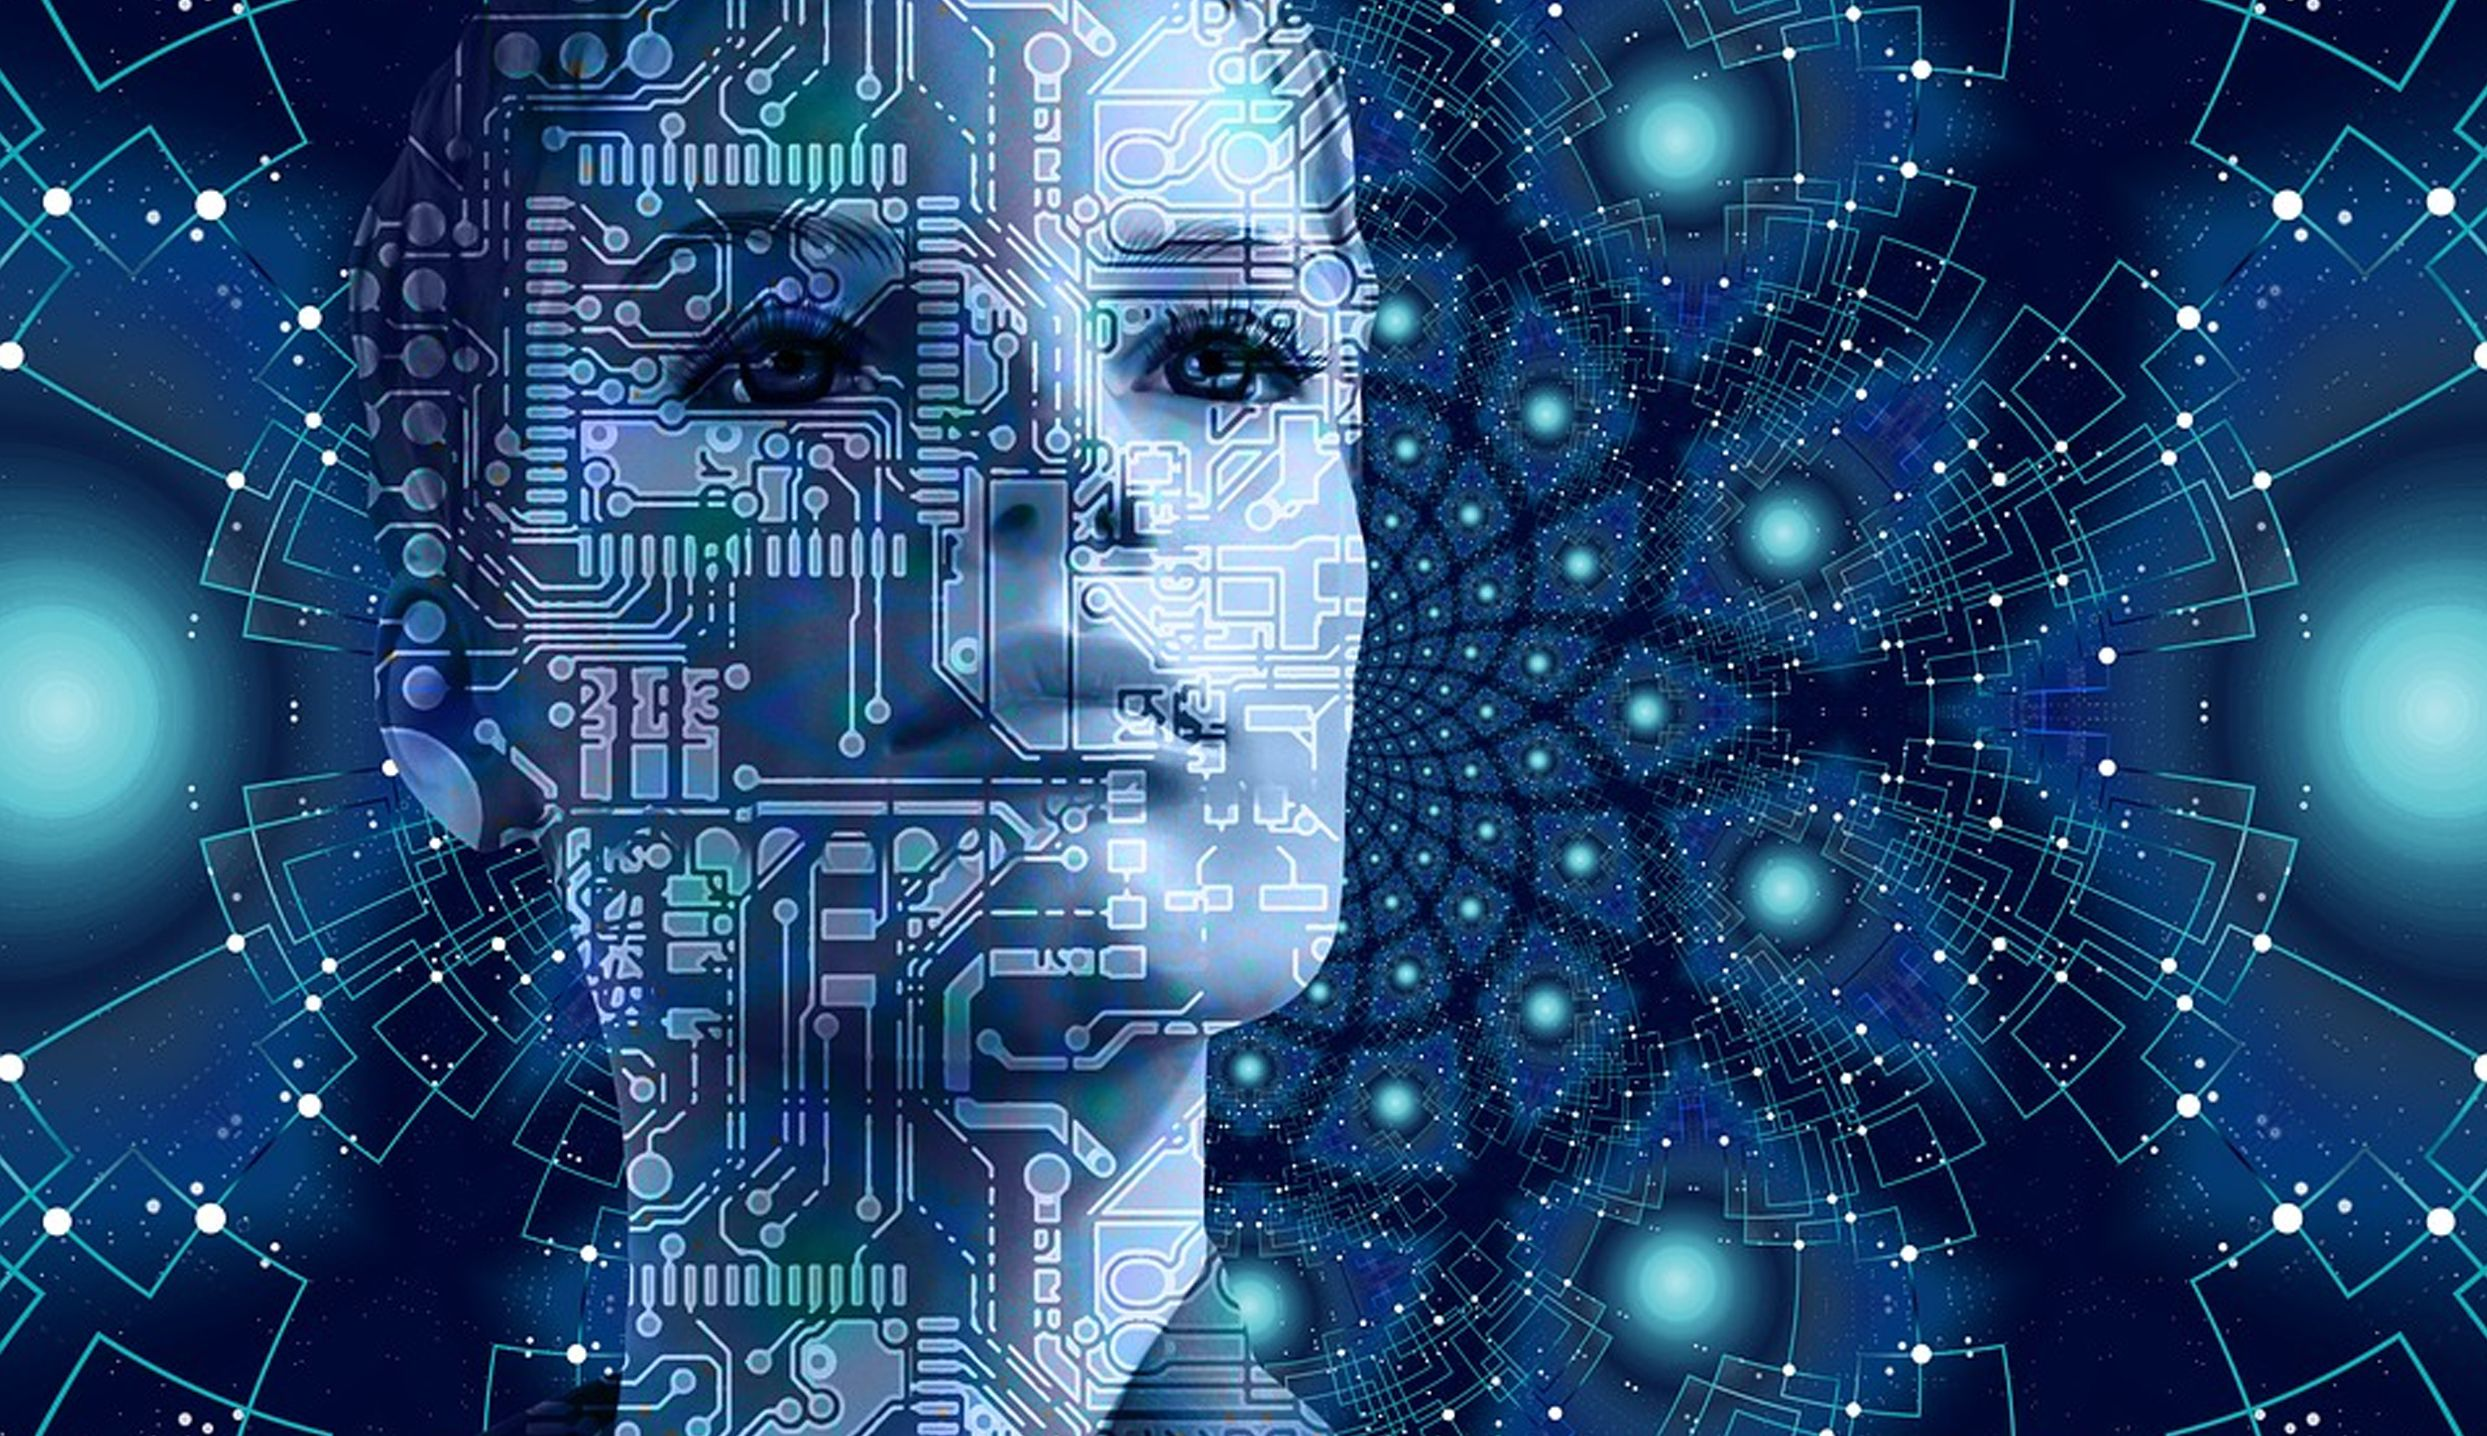 Artificial intelligence will allow you to communicate with dead people.